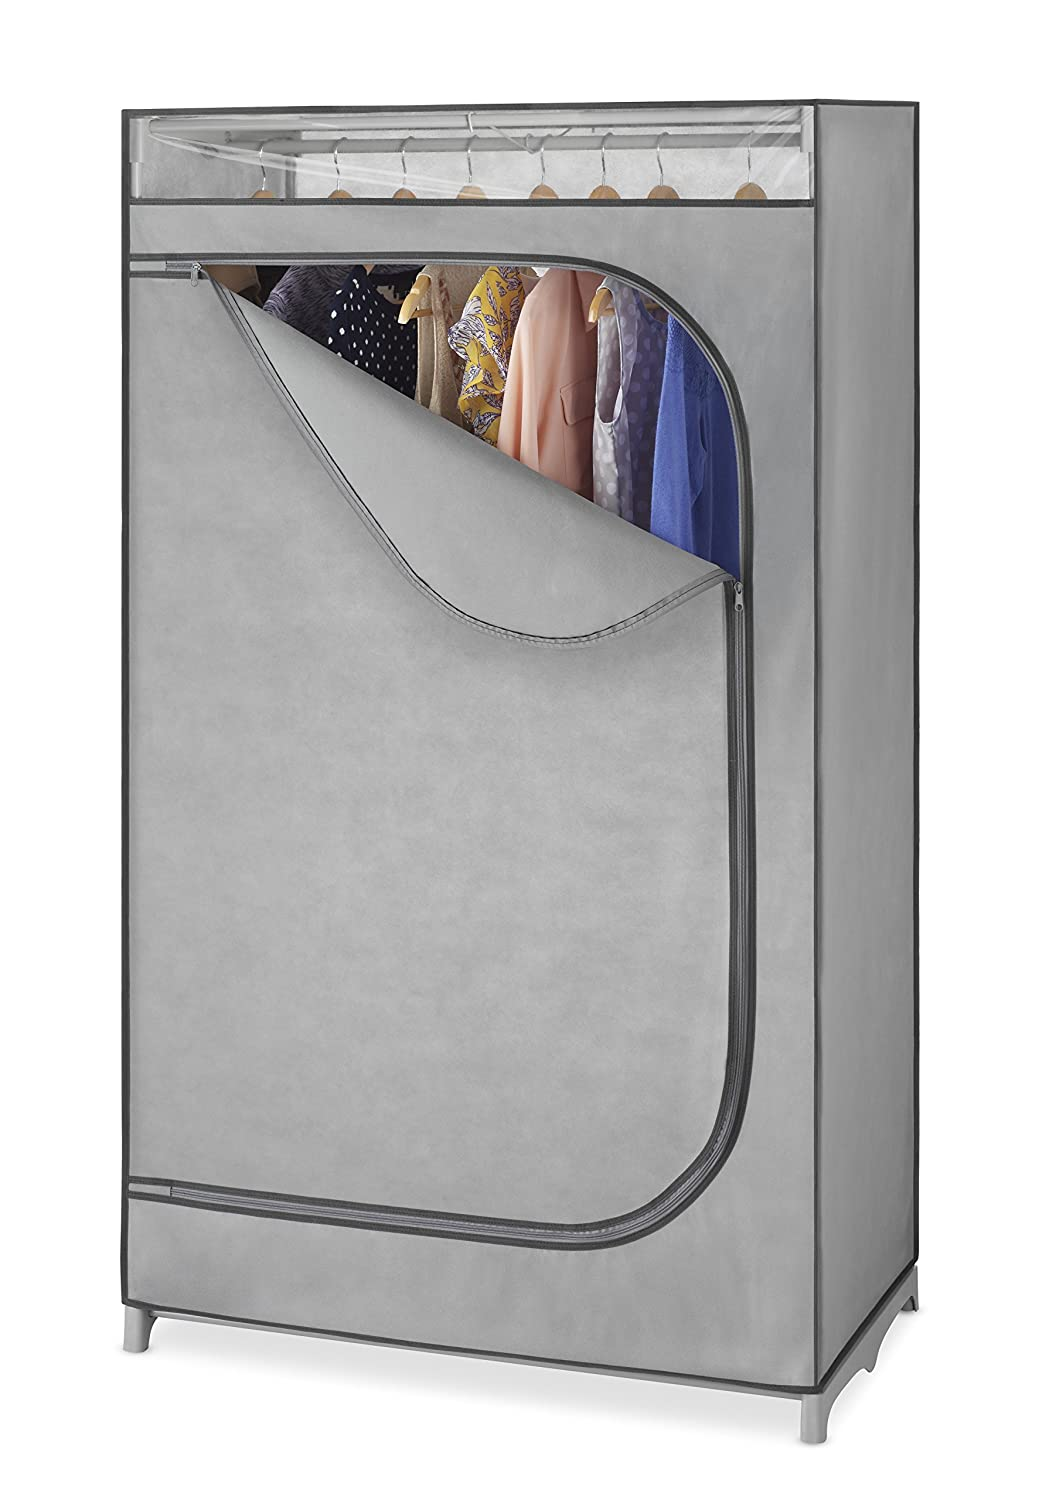 "Whitmor Portable Wardrobe Clothes Closet Storage Organizer with Hanging Rack - Grey Color - No-tool Assembly - See Through Window - Washable Fabric Cover - Extra Strong & Durable - 19.75 x 36 x 64"" WH-6725-150-PG-B"